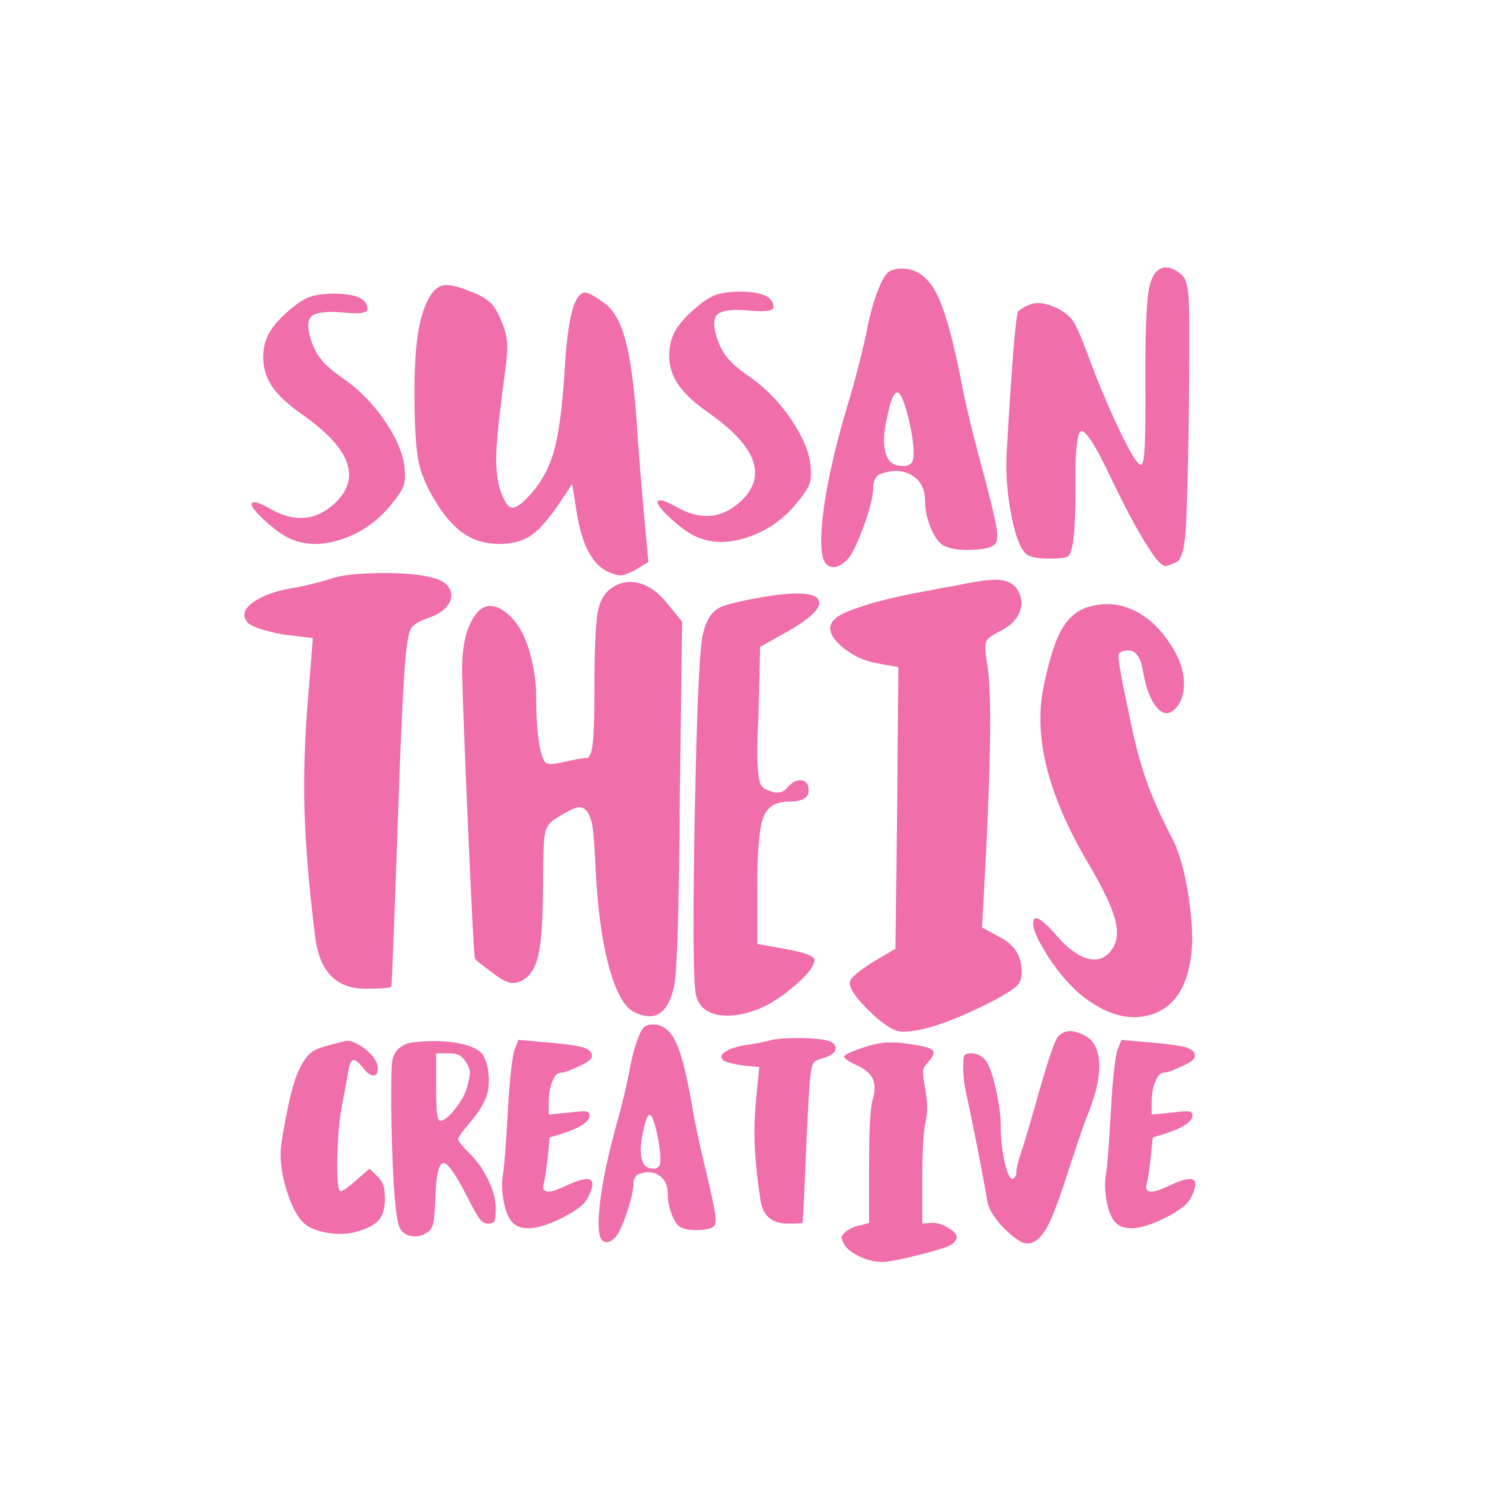 SUSAN THEIS CREATIVE